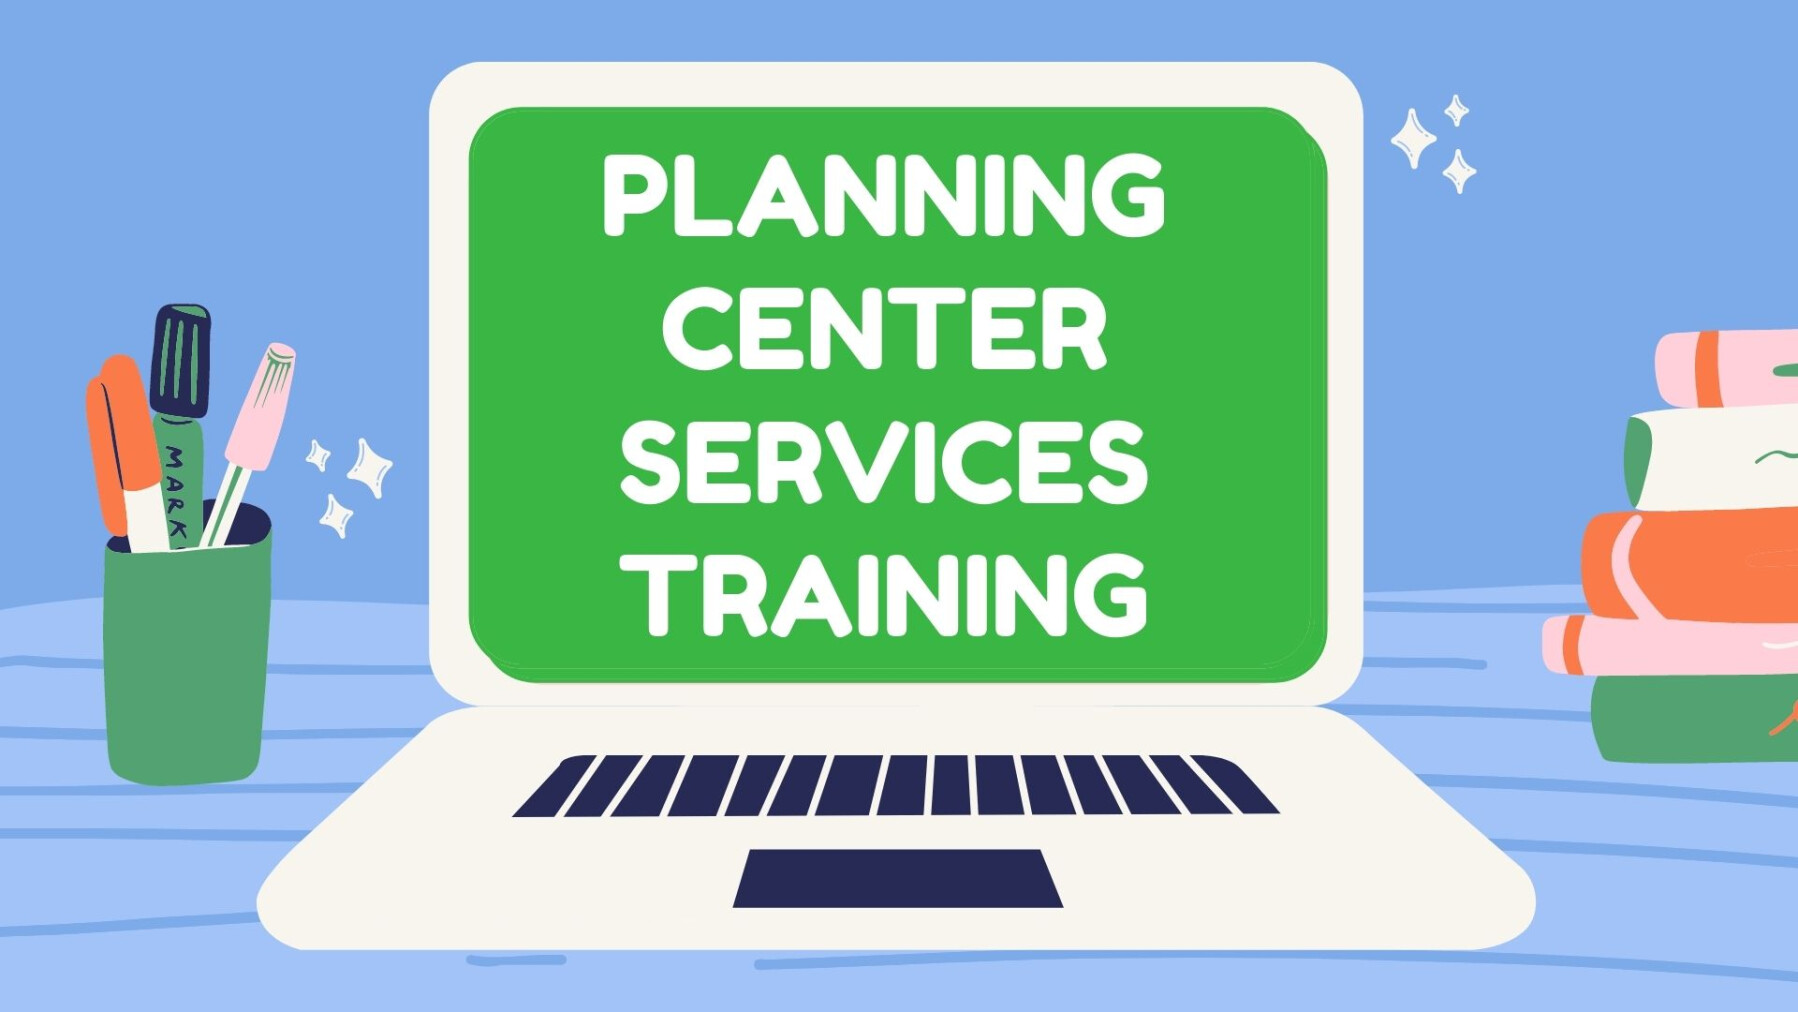 Planning Center Services Training for Liturgical Ministers